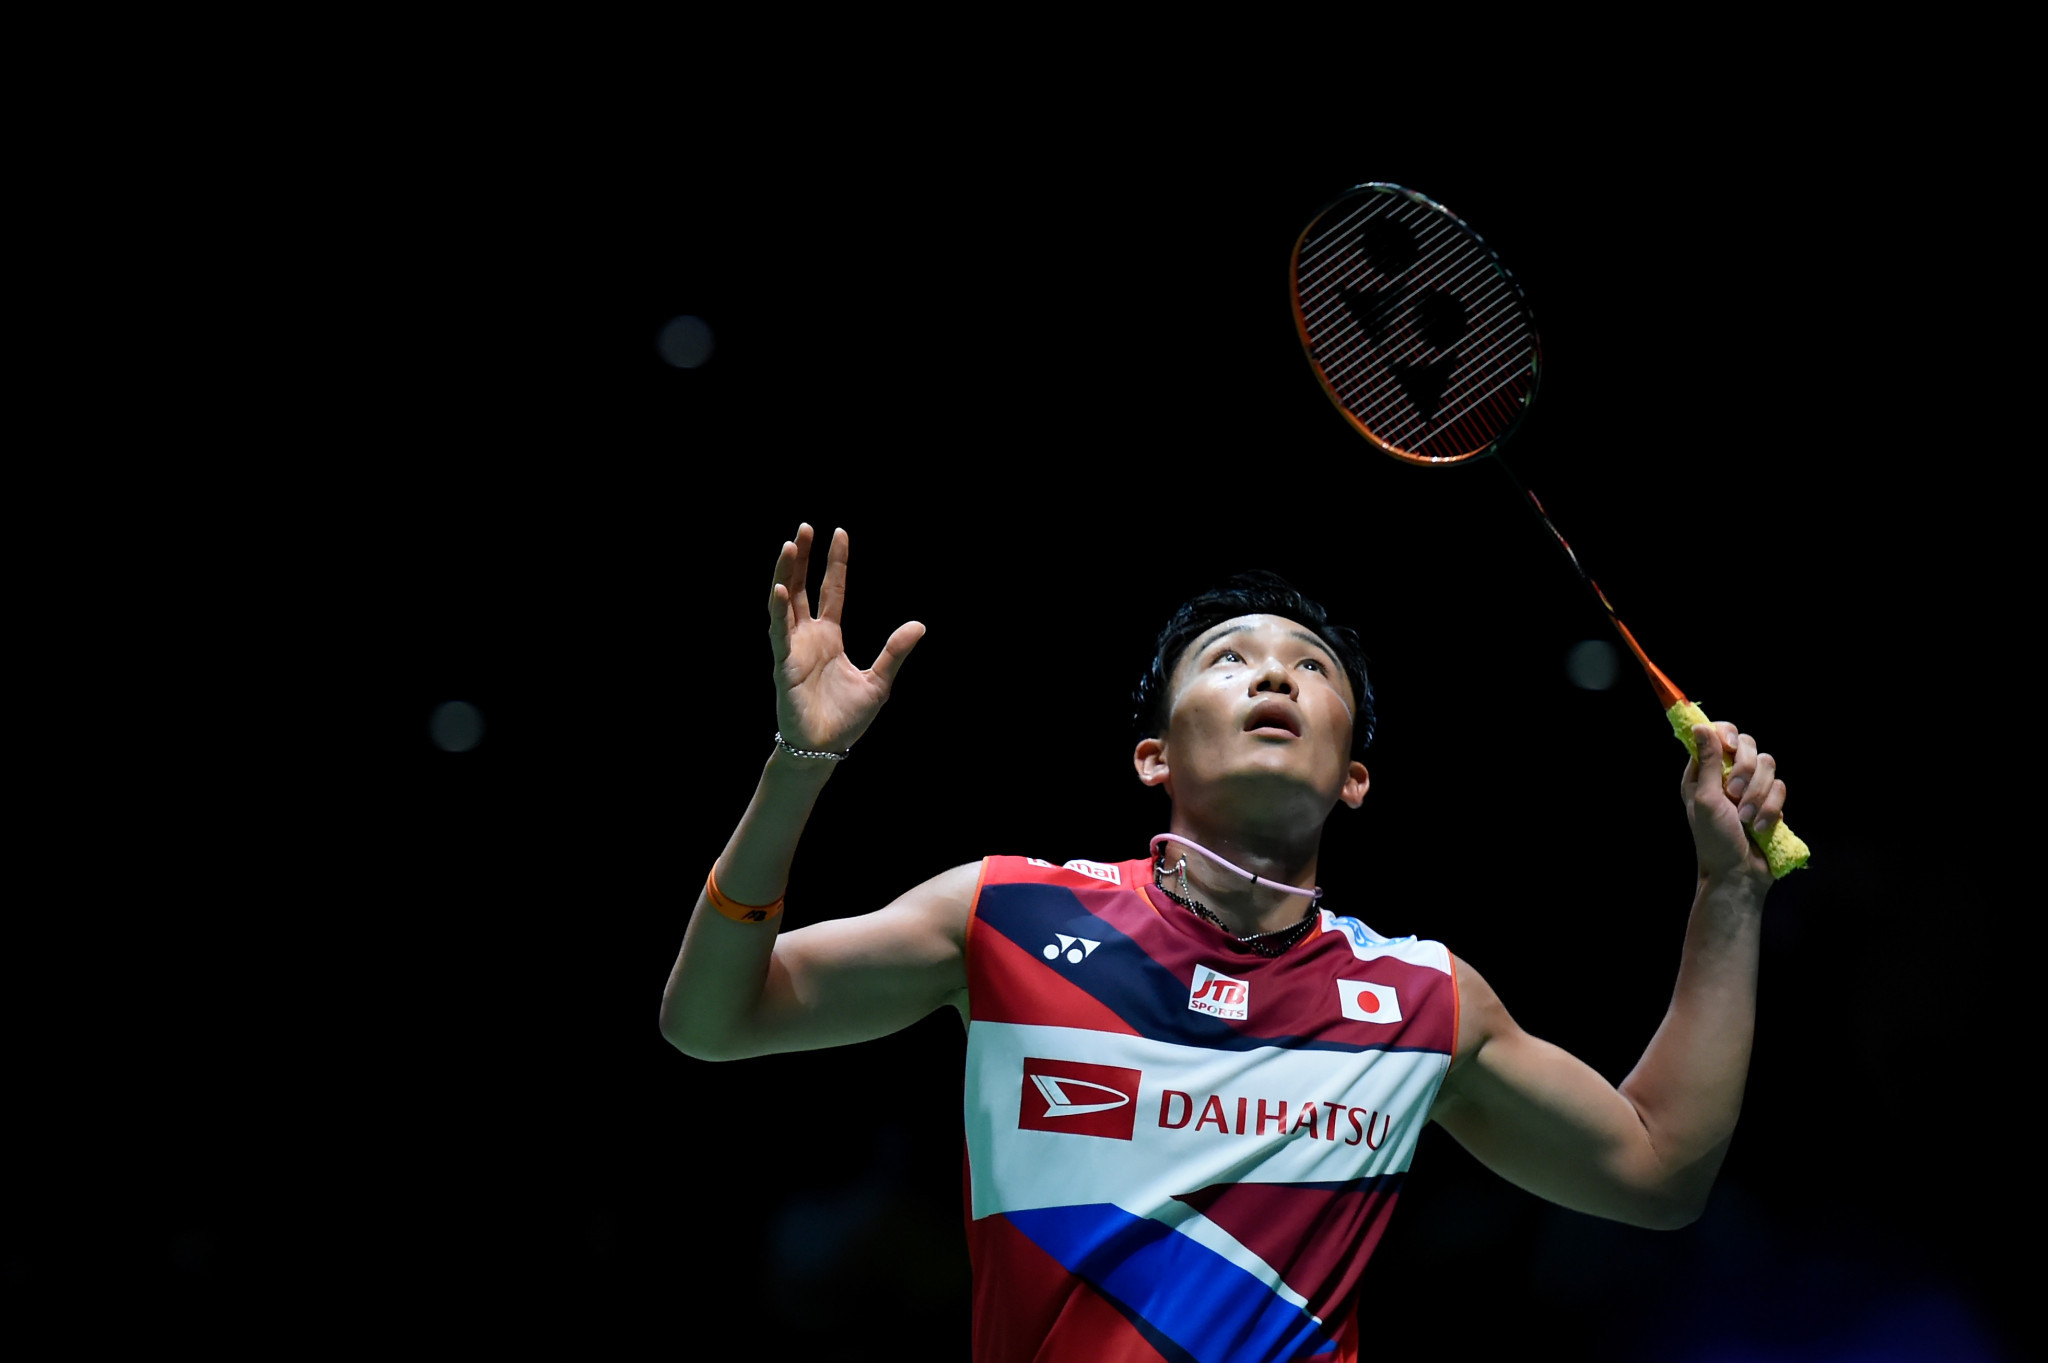 Home hero Momota marches on at BWF Japan Open and Tokyo 2020 test event